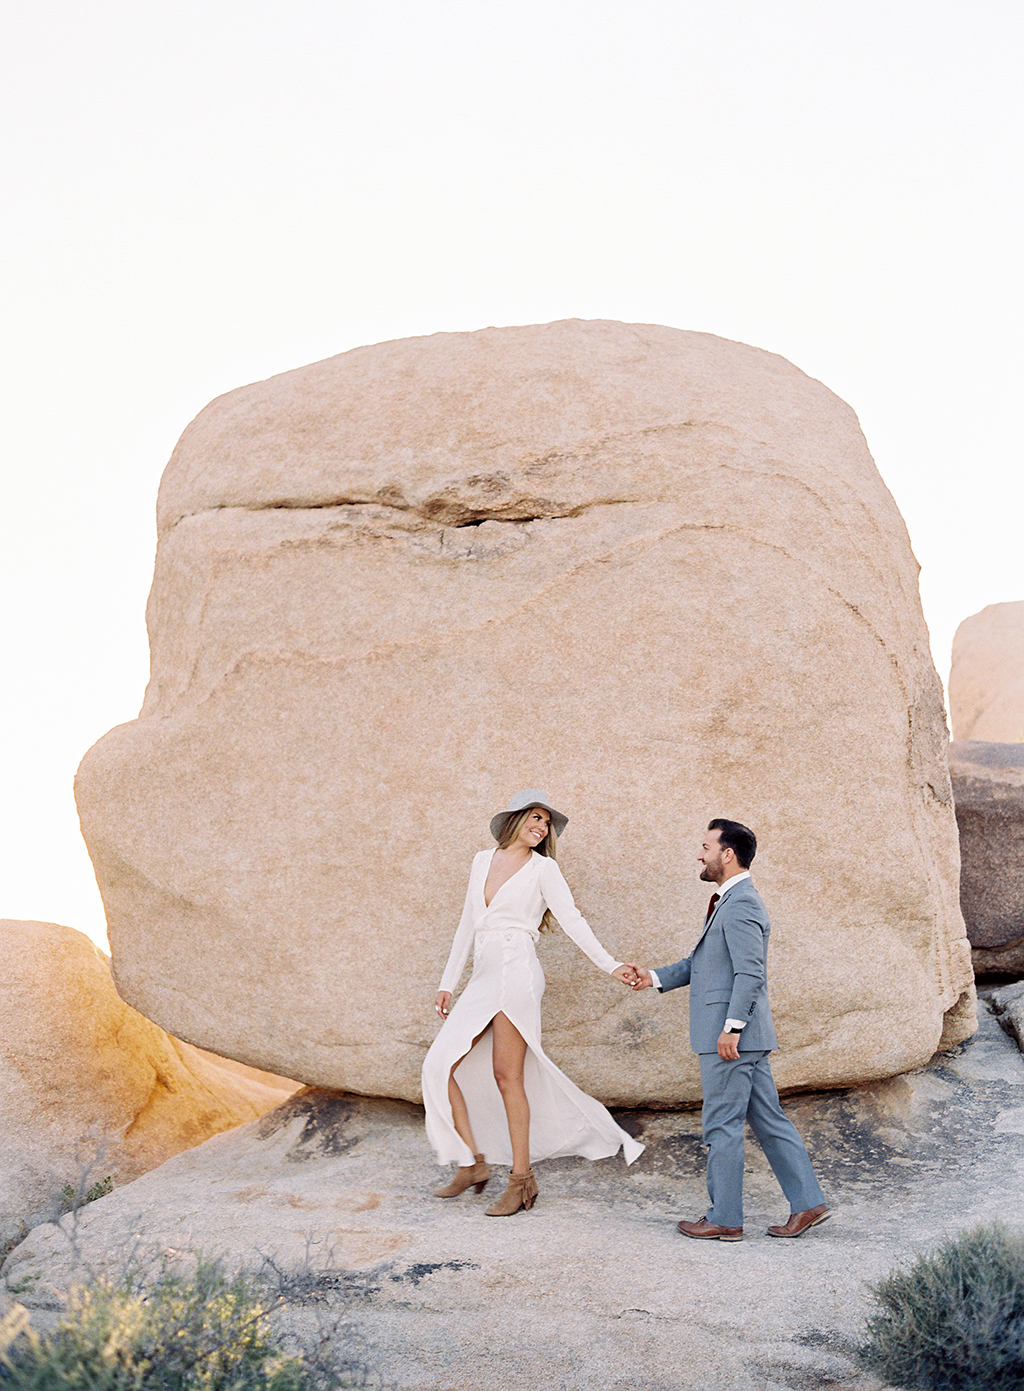 An engaged couple walking through Joshua Tree National Park for their engagement session.